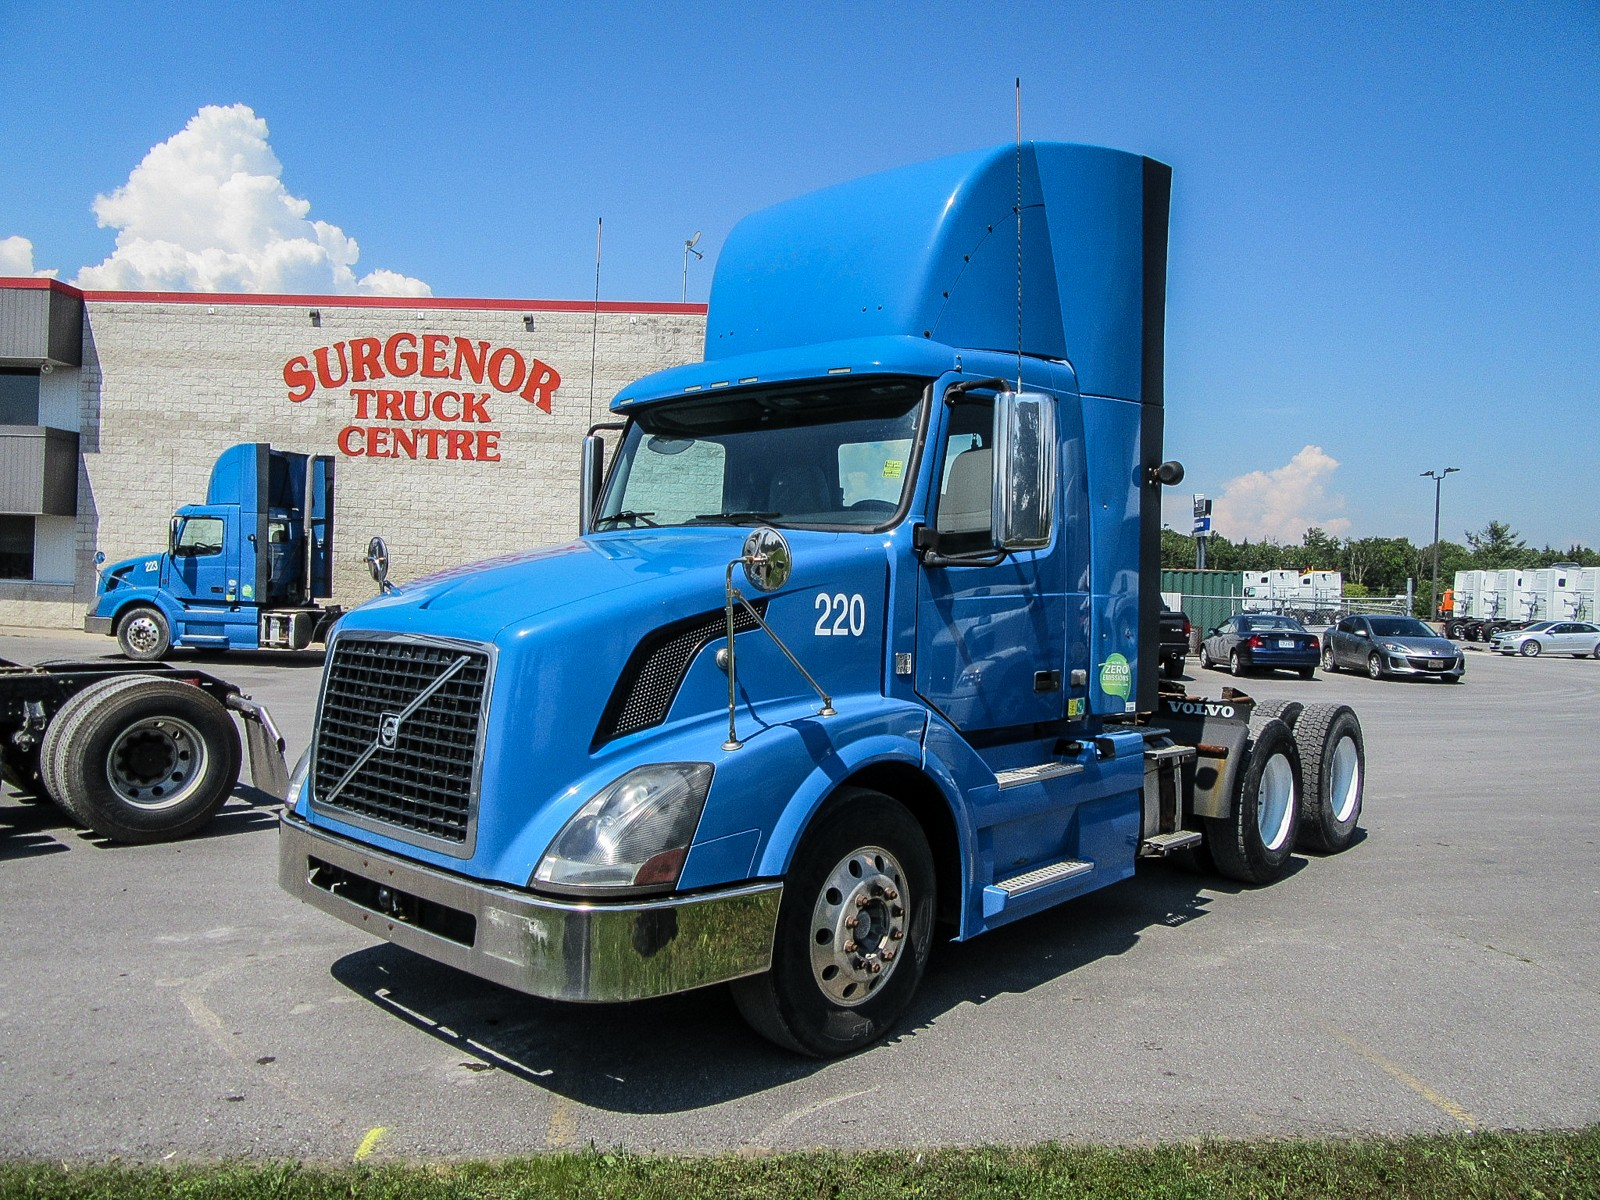 volvo used for and best traler images semi call trailers features on sale new pinterest at trucks media truck